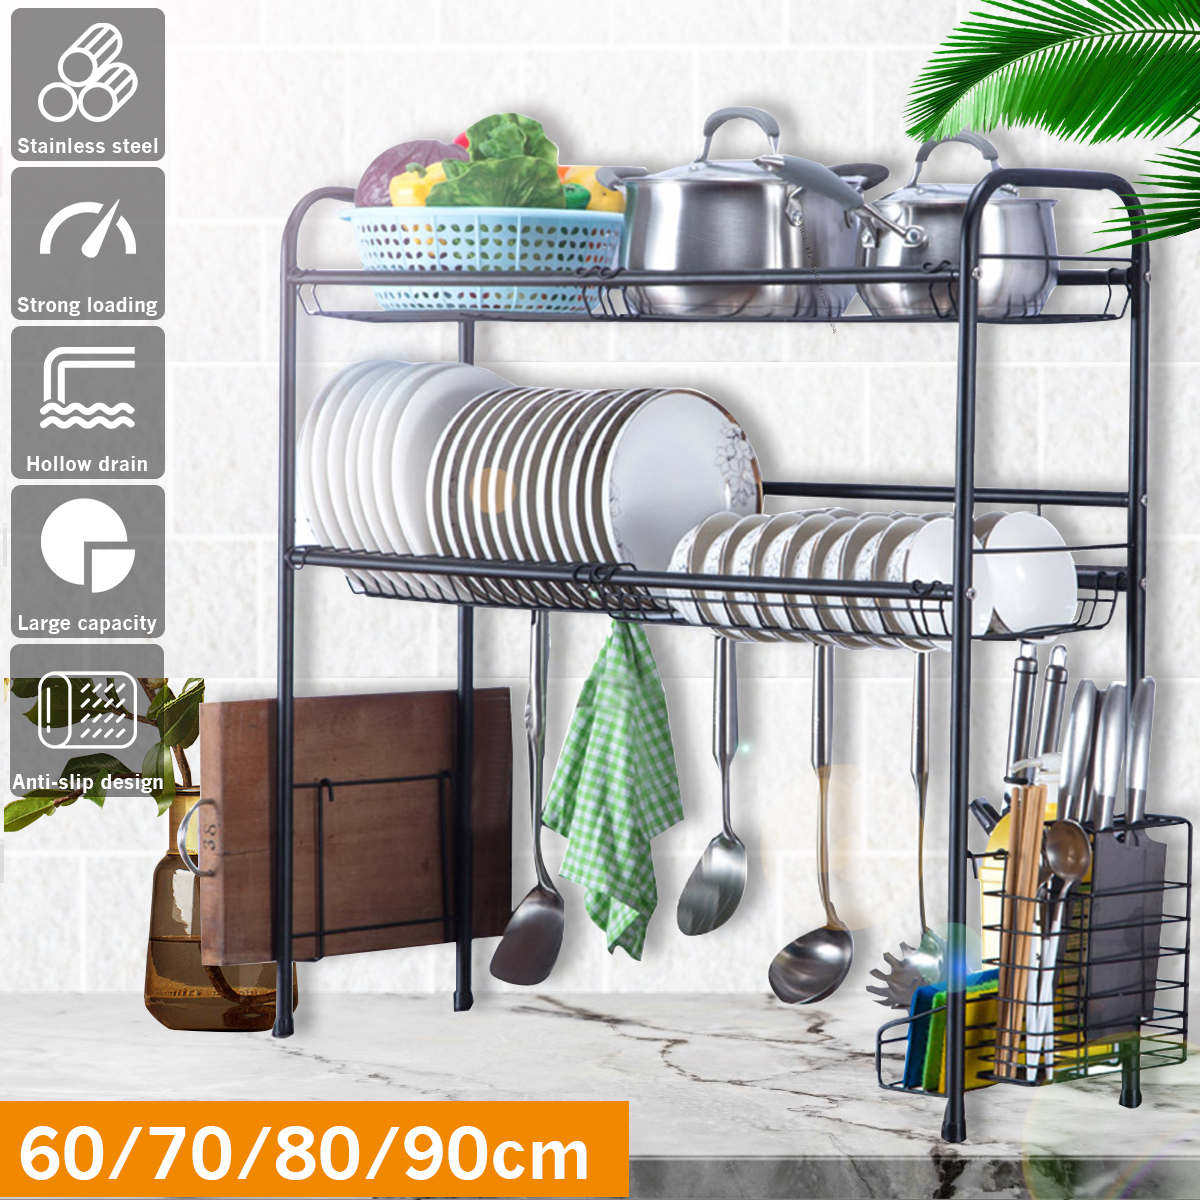 Black 4 Size 304 Stainless Steel Sink Drain Rack Kitchen Shelf 2 Layer Floor Sink Plate Rack Dish Rack Kitchen Storage Rack Home Leather Bag